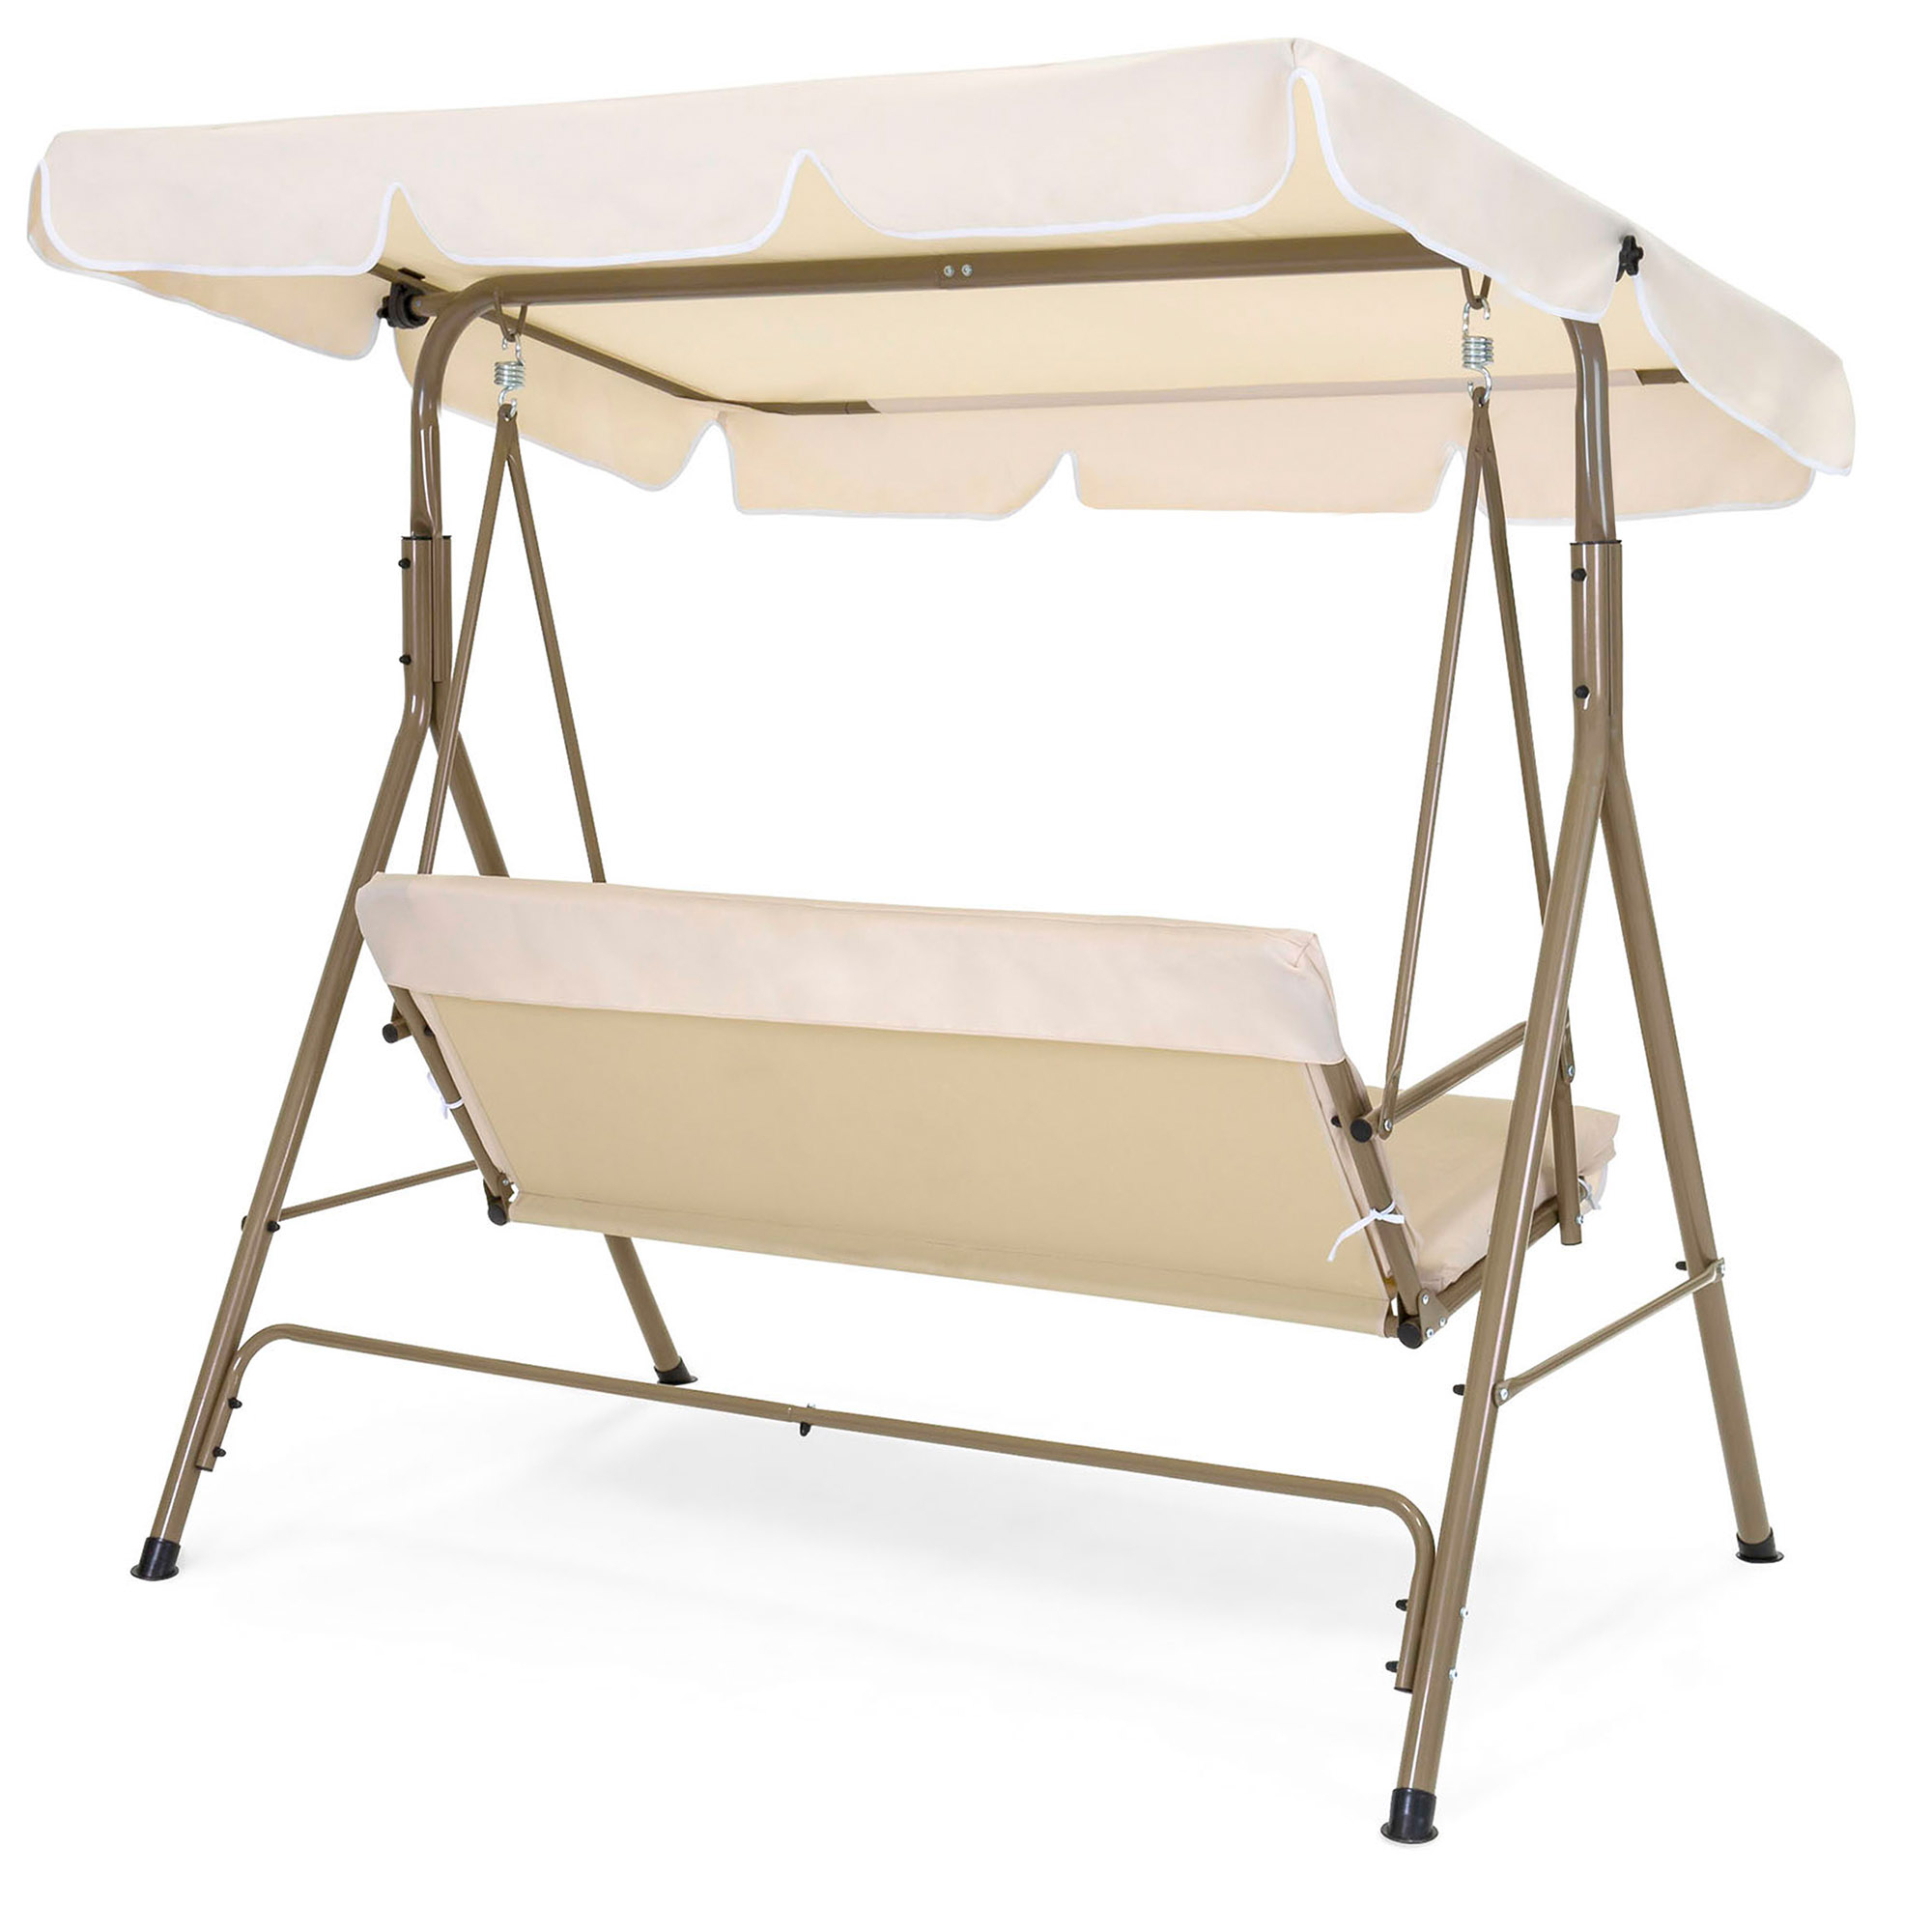 Most Up To Date 2 Person Outdoor Convertible Canopy Swing Gliders With Removable Cushions Beige Regarding Best Choice Products 2 Person Outdoor Large Convertible (View 2 of 25)